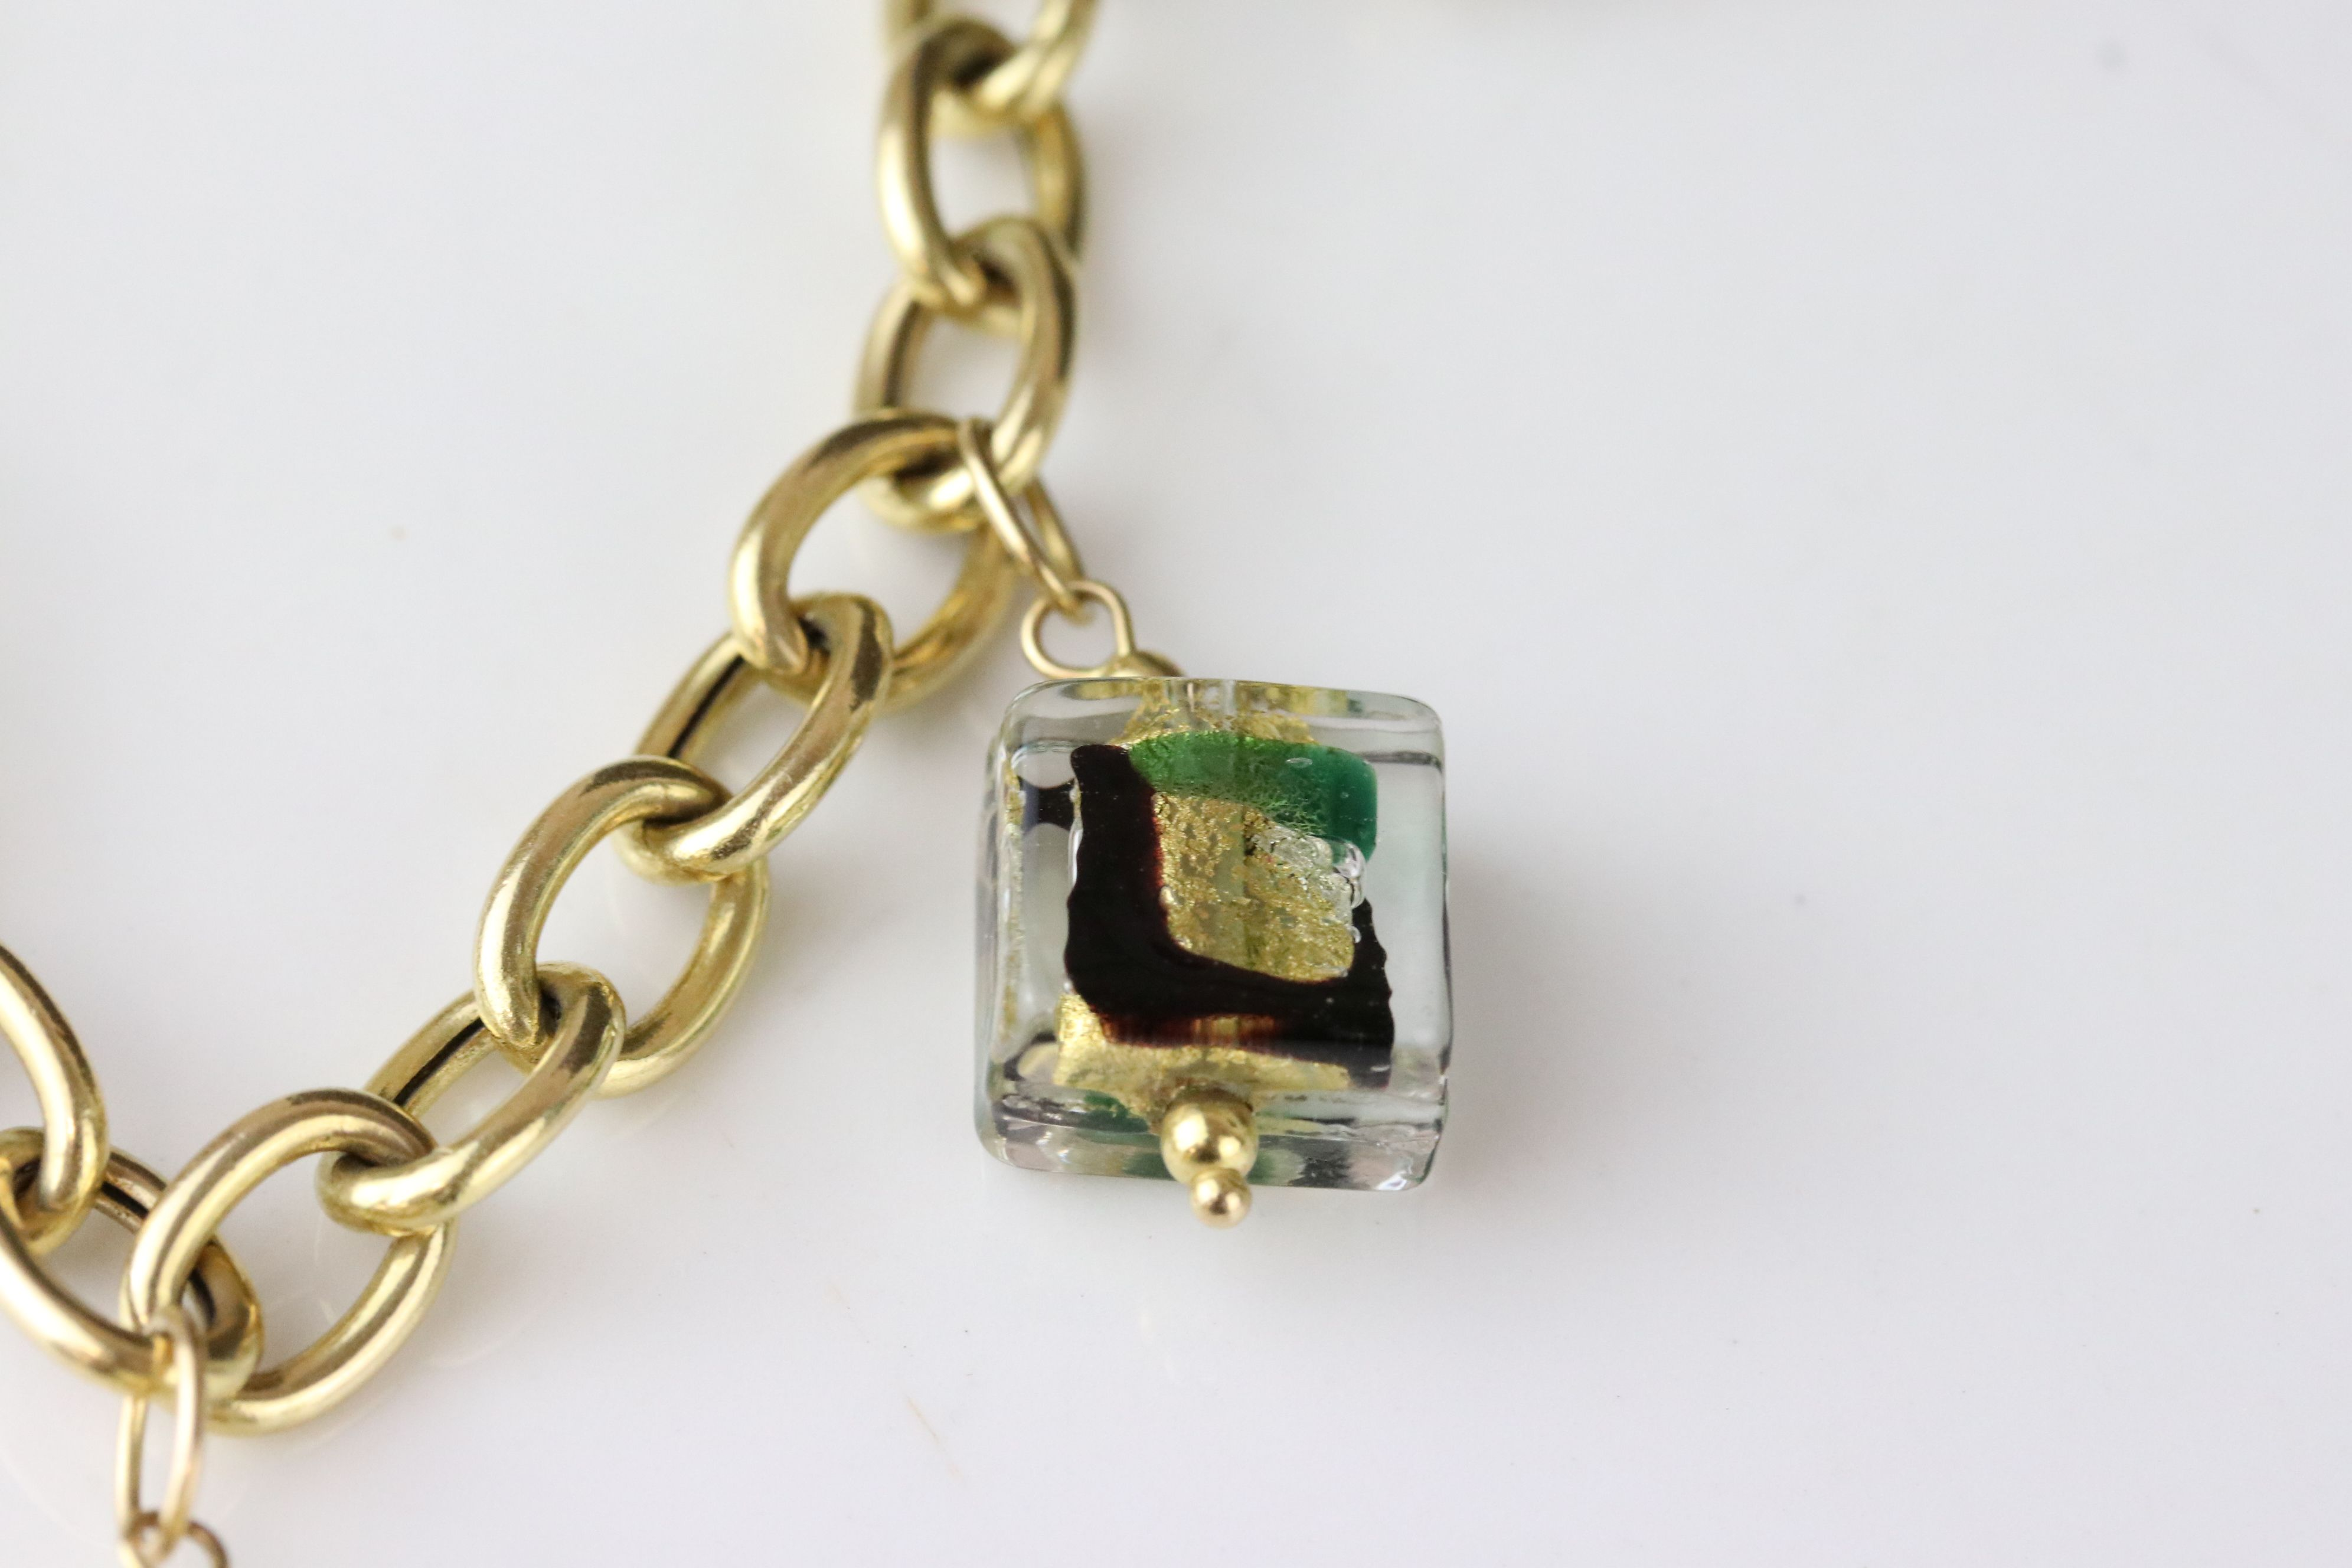 14ct yellow gold charm bracelet with five Murano style glass charms, lobster clasp, length approx - Image 4 of 5